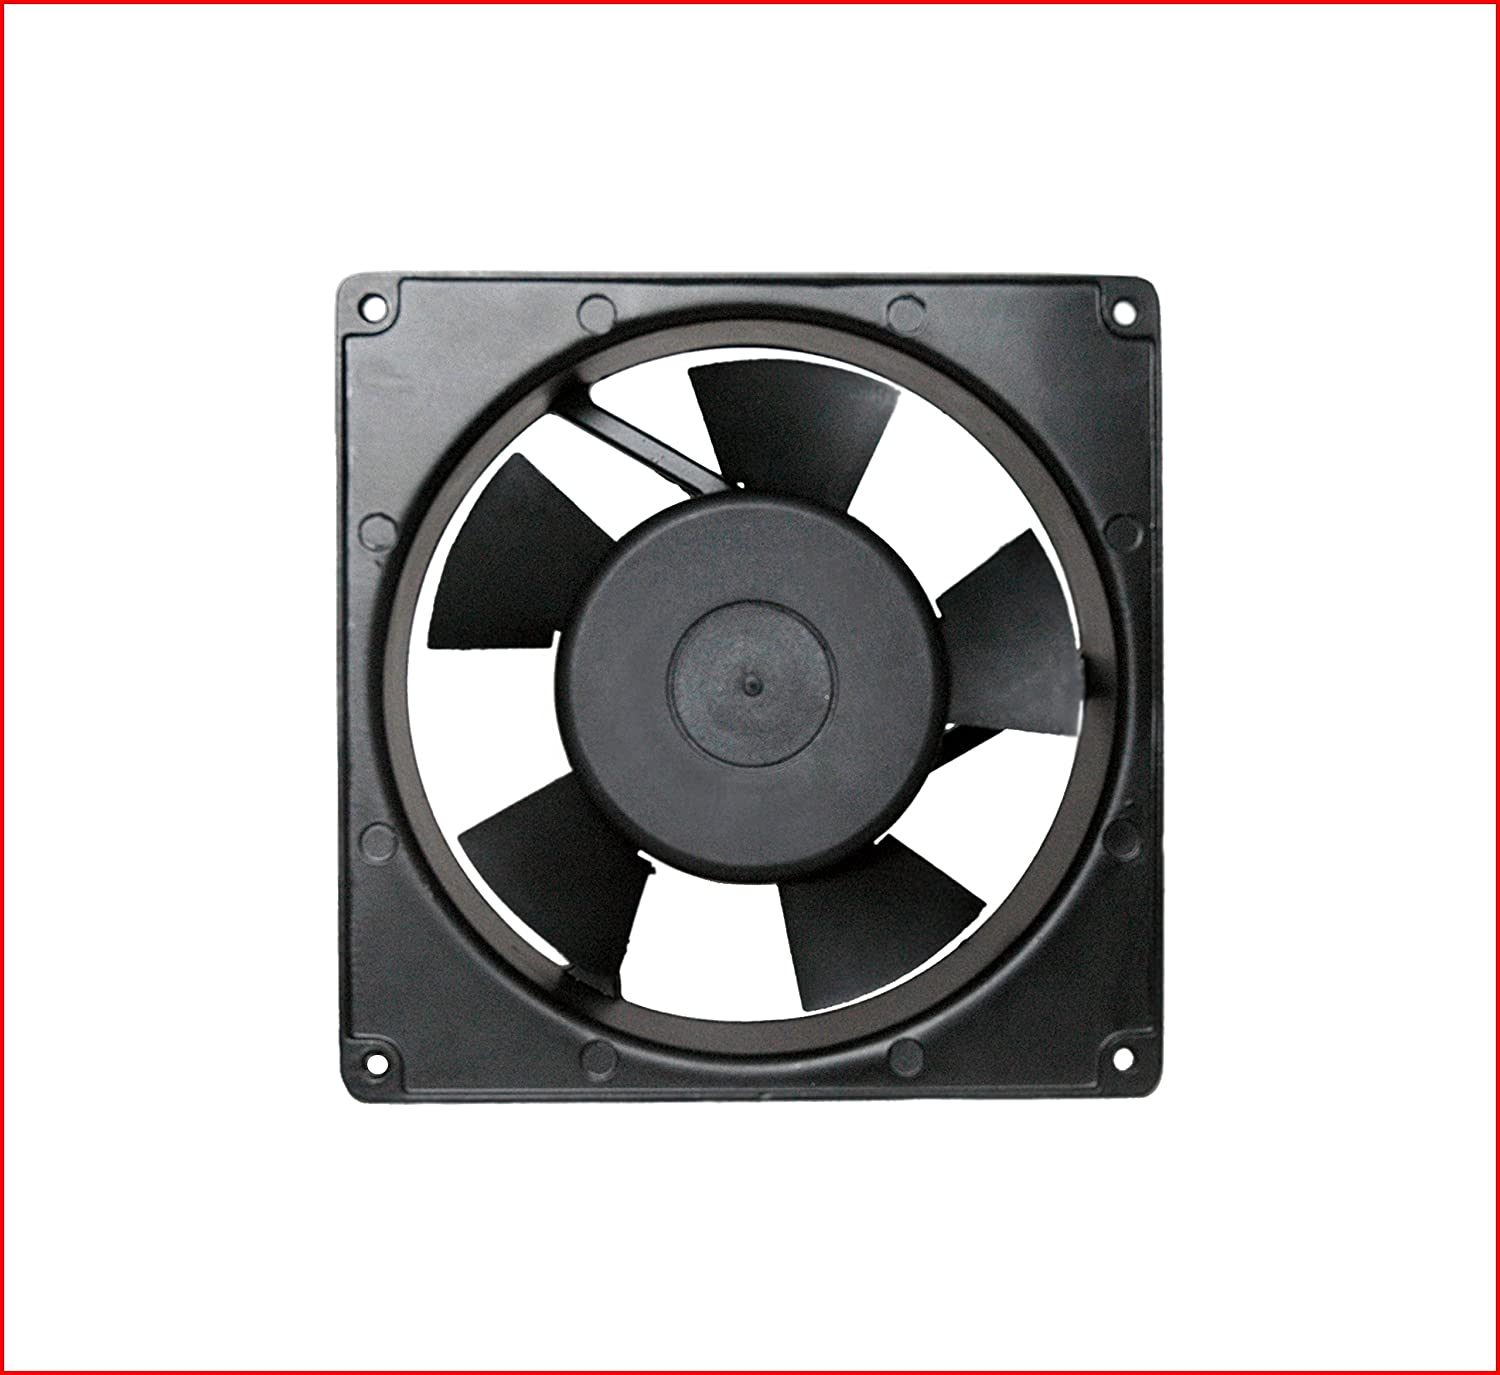 Fan for kitchen exhaust - Maa Ku Ac Small Kitchen Exhaust Fan 6 70 Inches 17x17x5cm Black Amazon In Home Kitchen